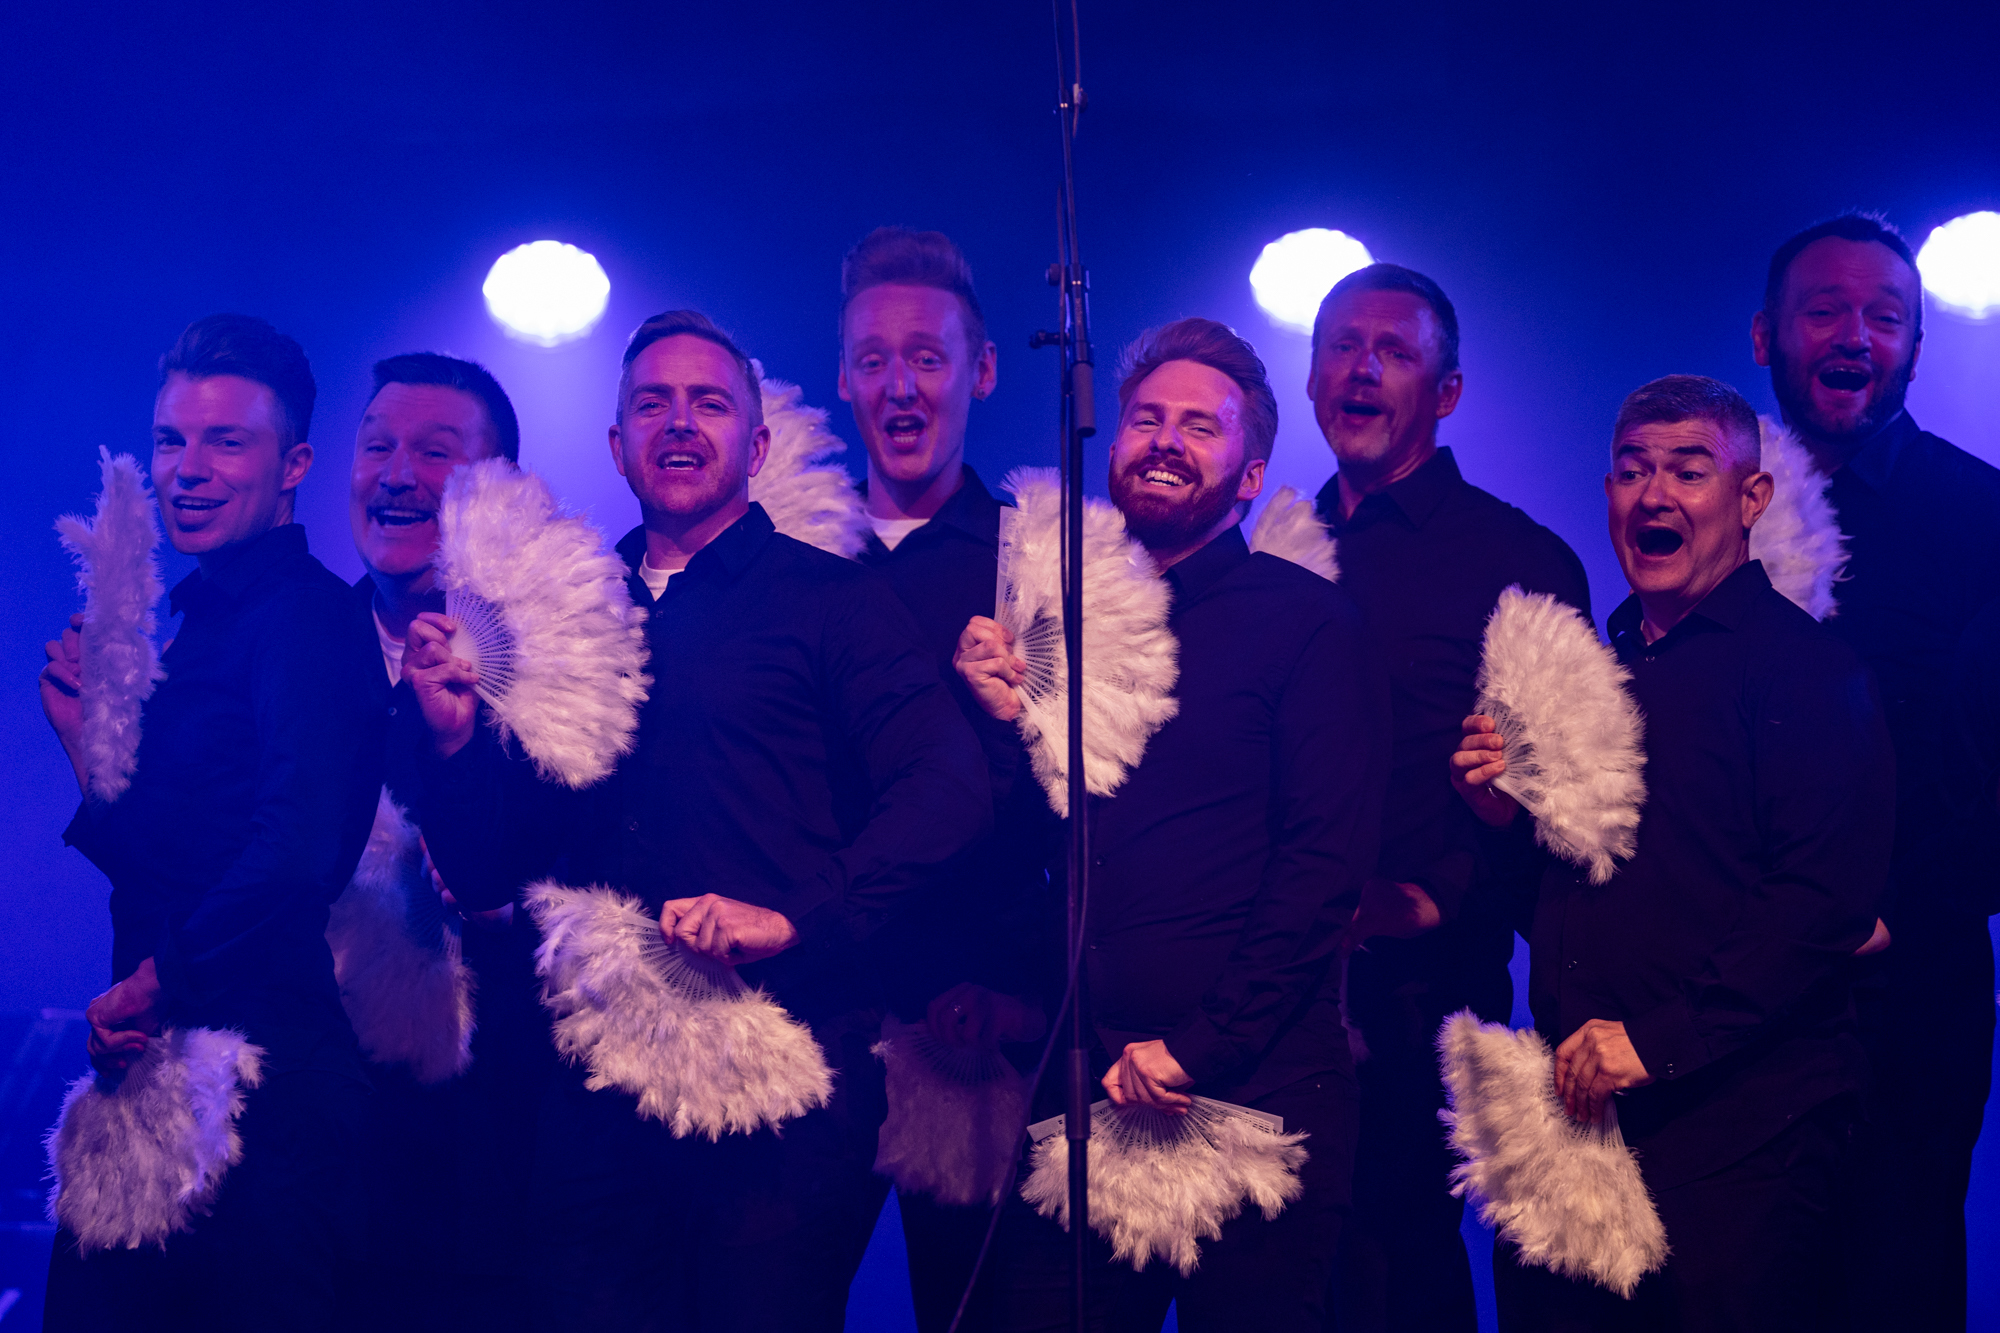 London Gay Men's Chorus will take to the stage for 'Homo Alone' this Christmas